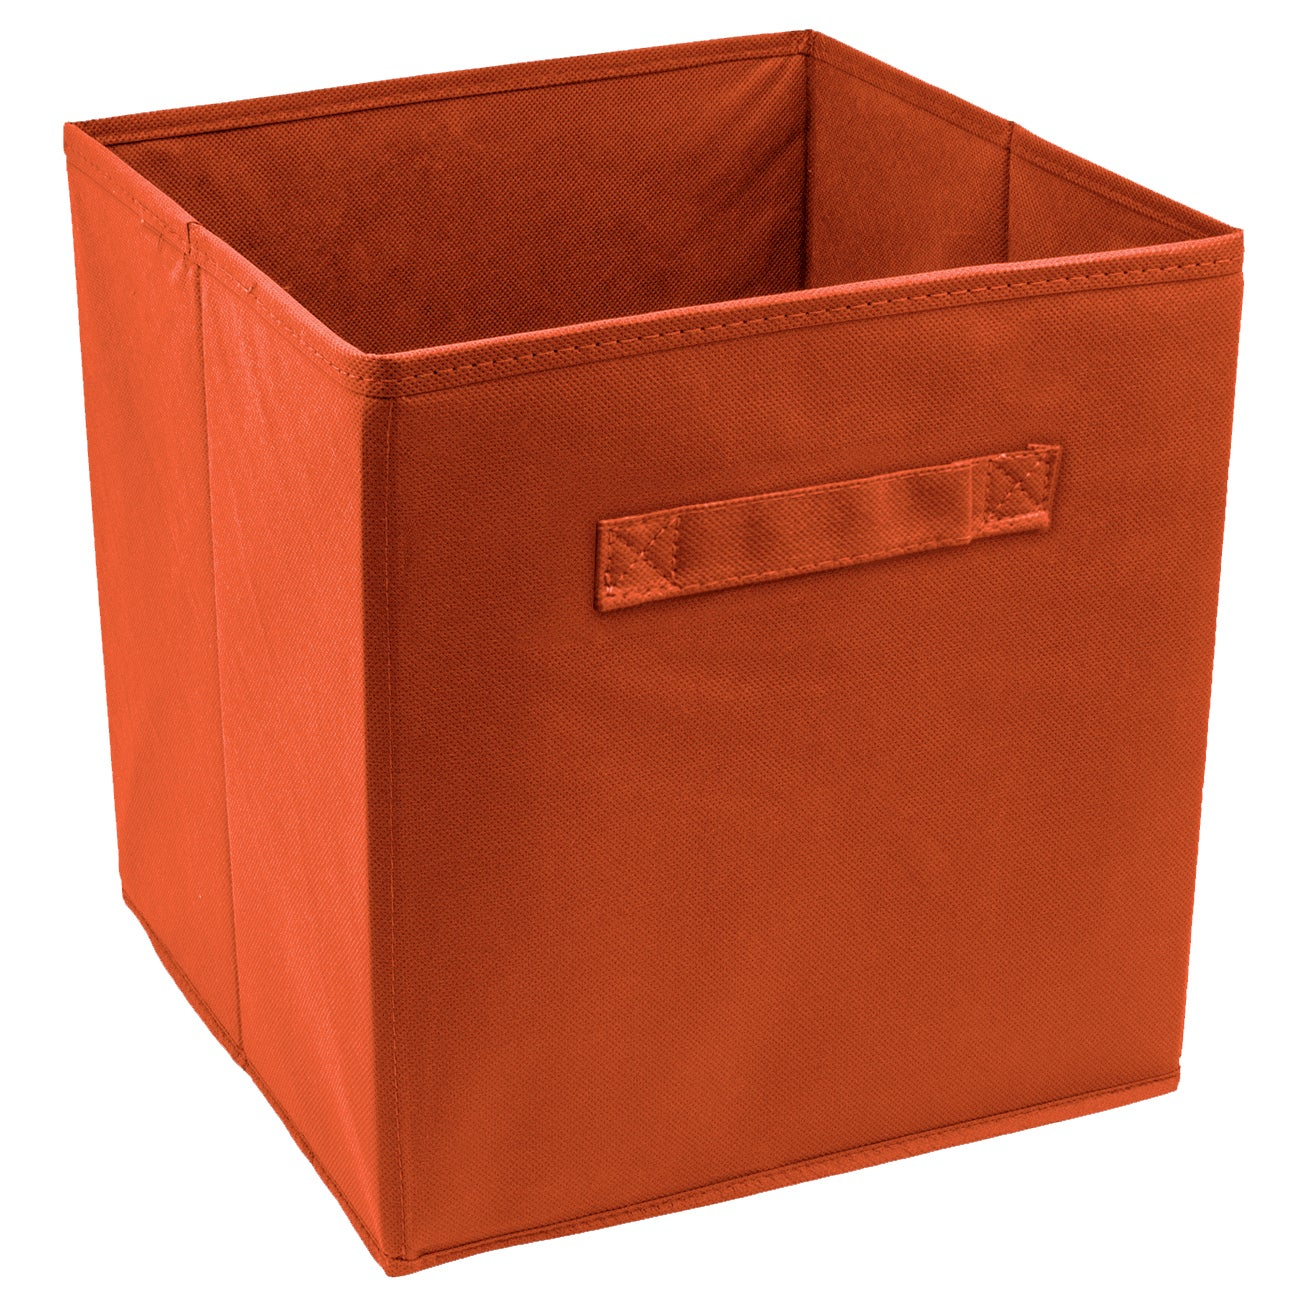 High Quality Sorbus Foldable Storage Cube Basket Bin (6 Pack, Orange)   Free Shipping On  Orders Over $45   Overstock   23118951